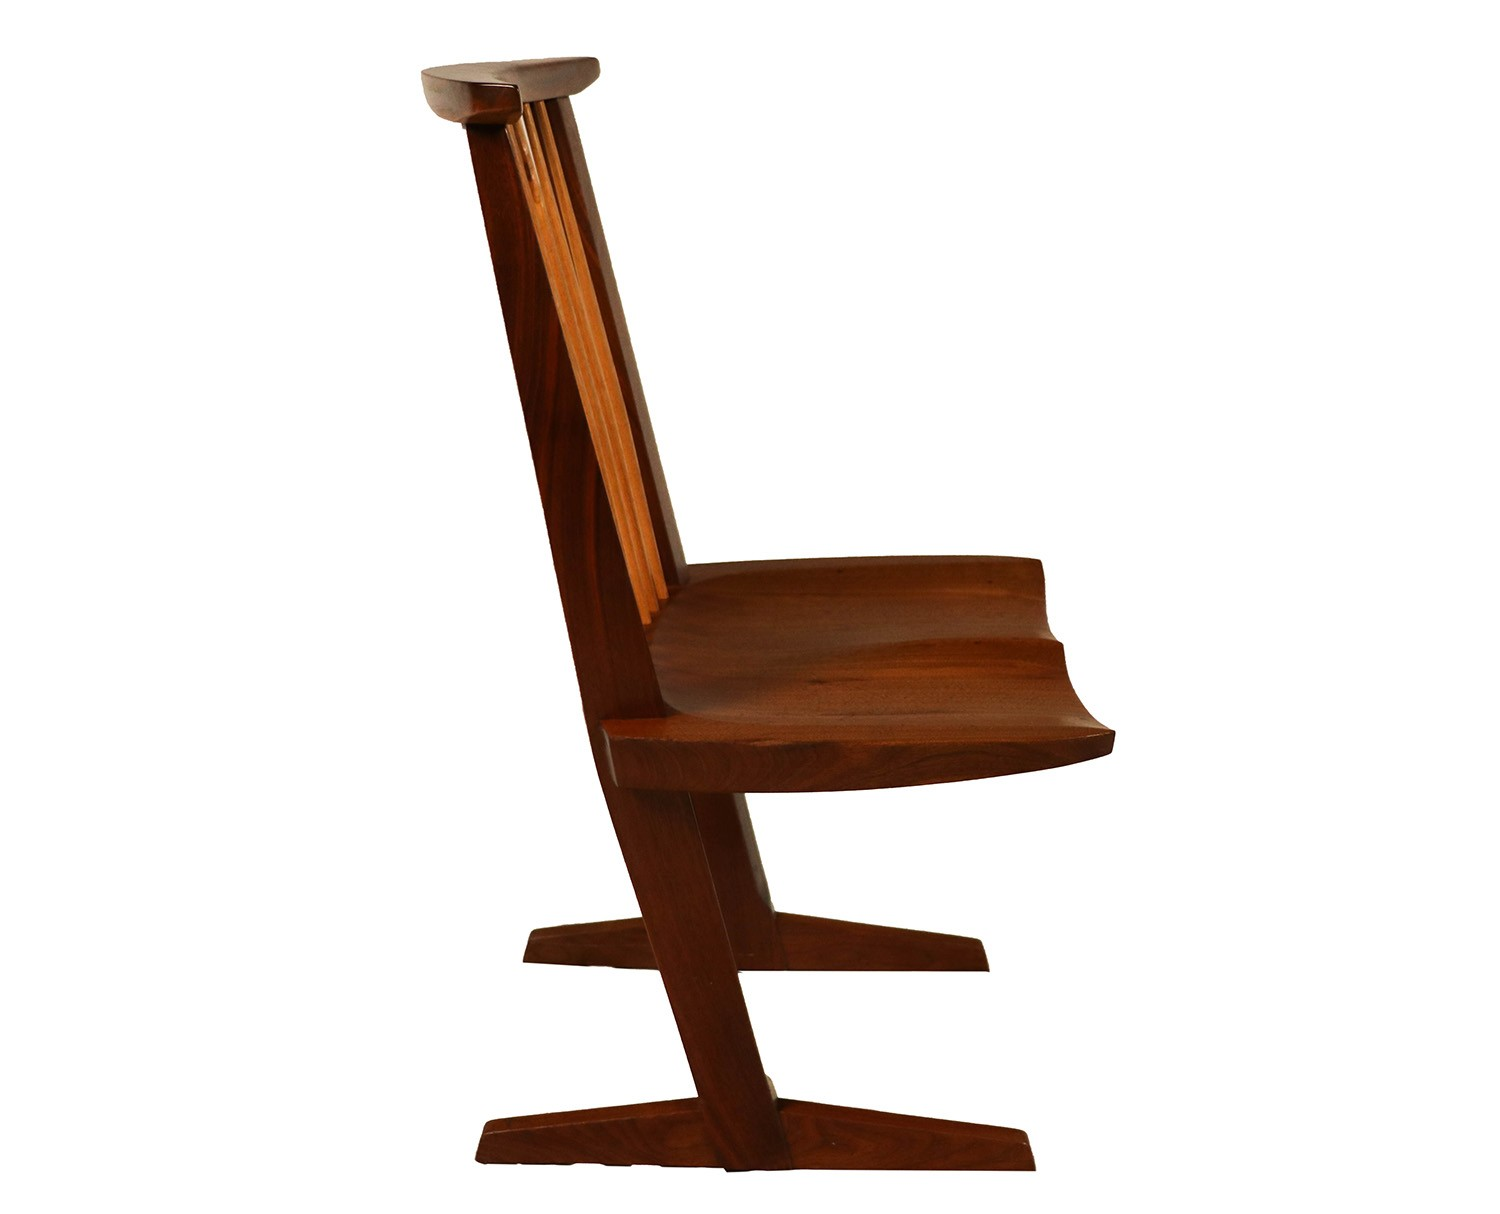 George Nakashima Conoid Chairs George Nakashima Furniture